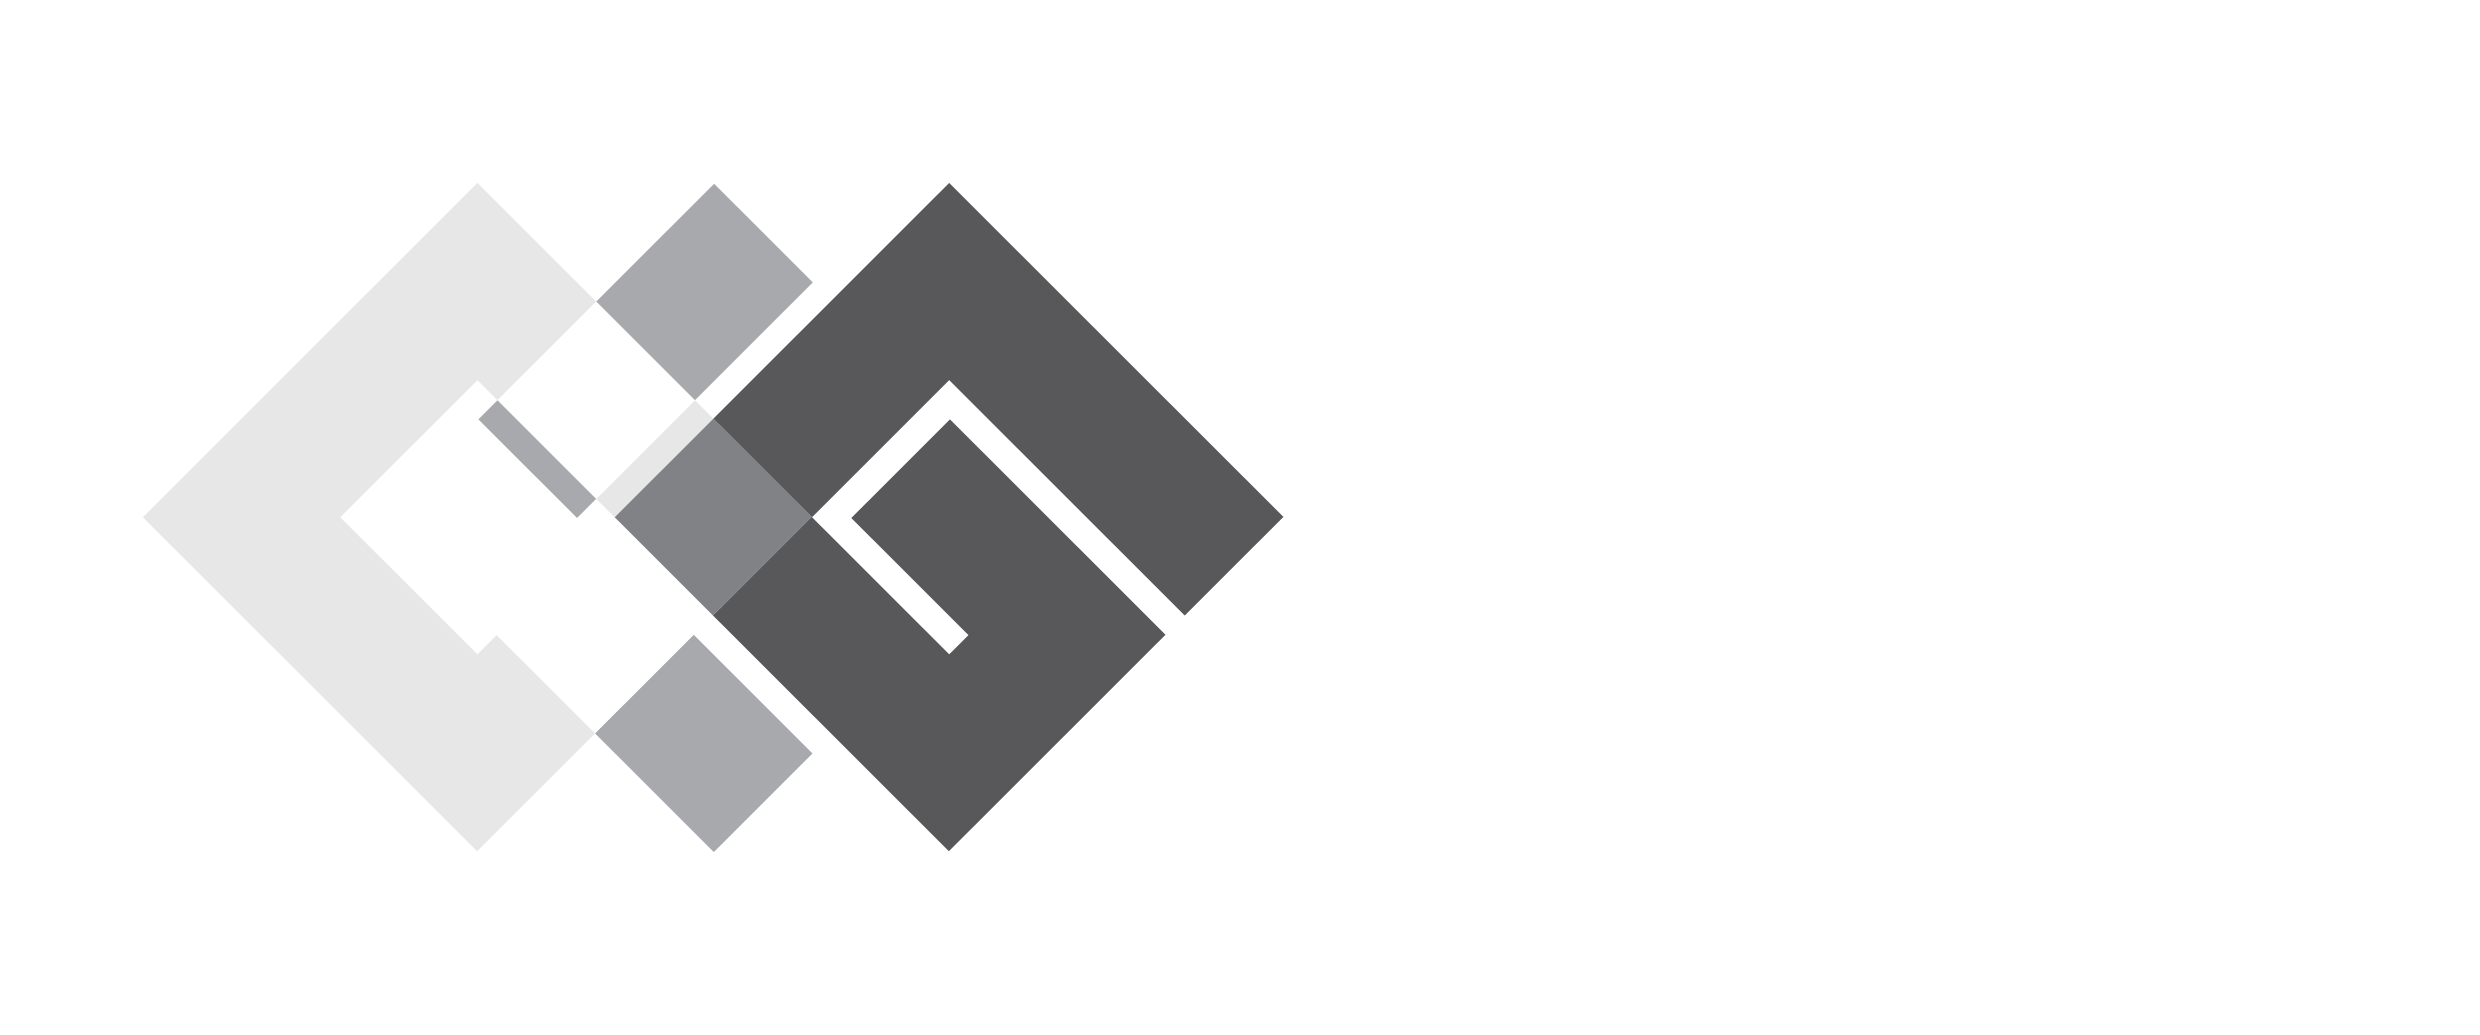 GALLEON_LOGO_BLACK